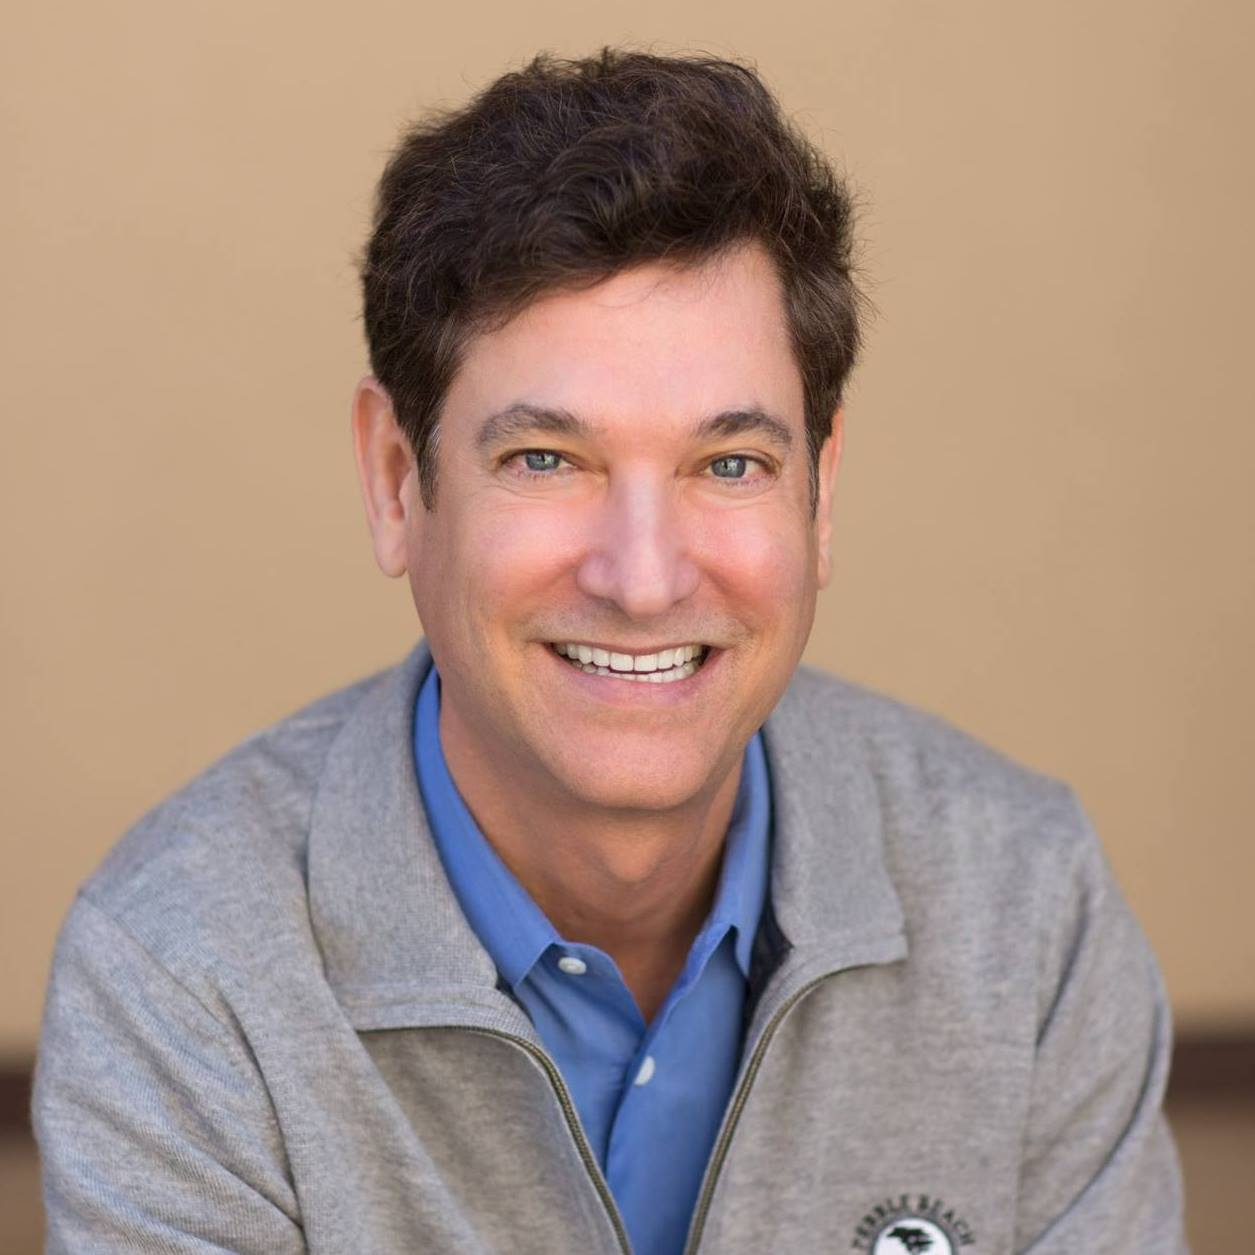 Famed VC Jim Breyer on finding the next Mark Zuckerberg (and much more)